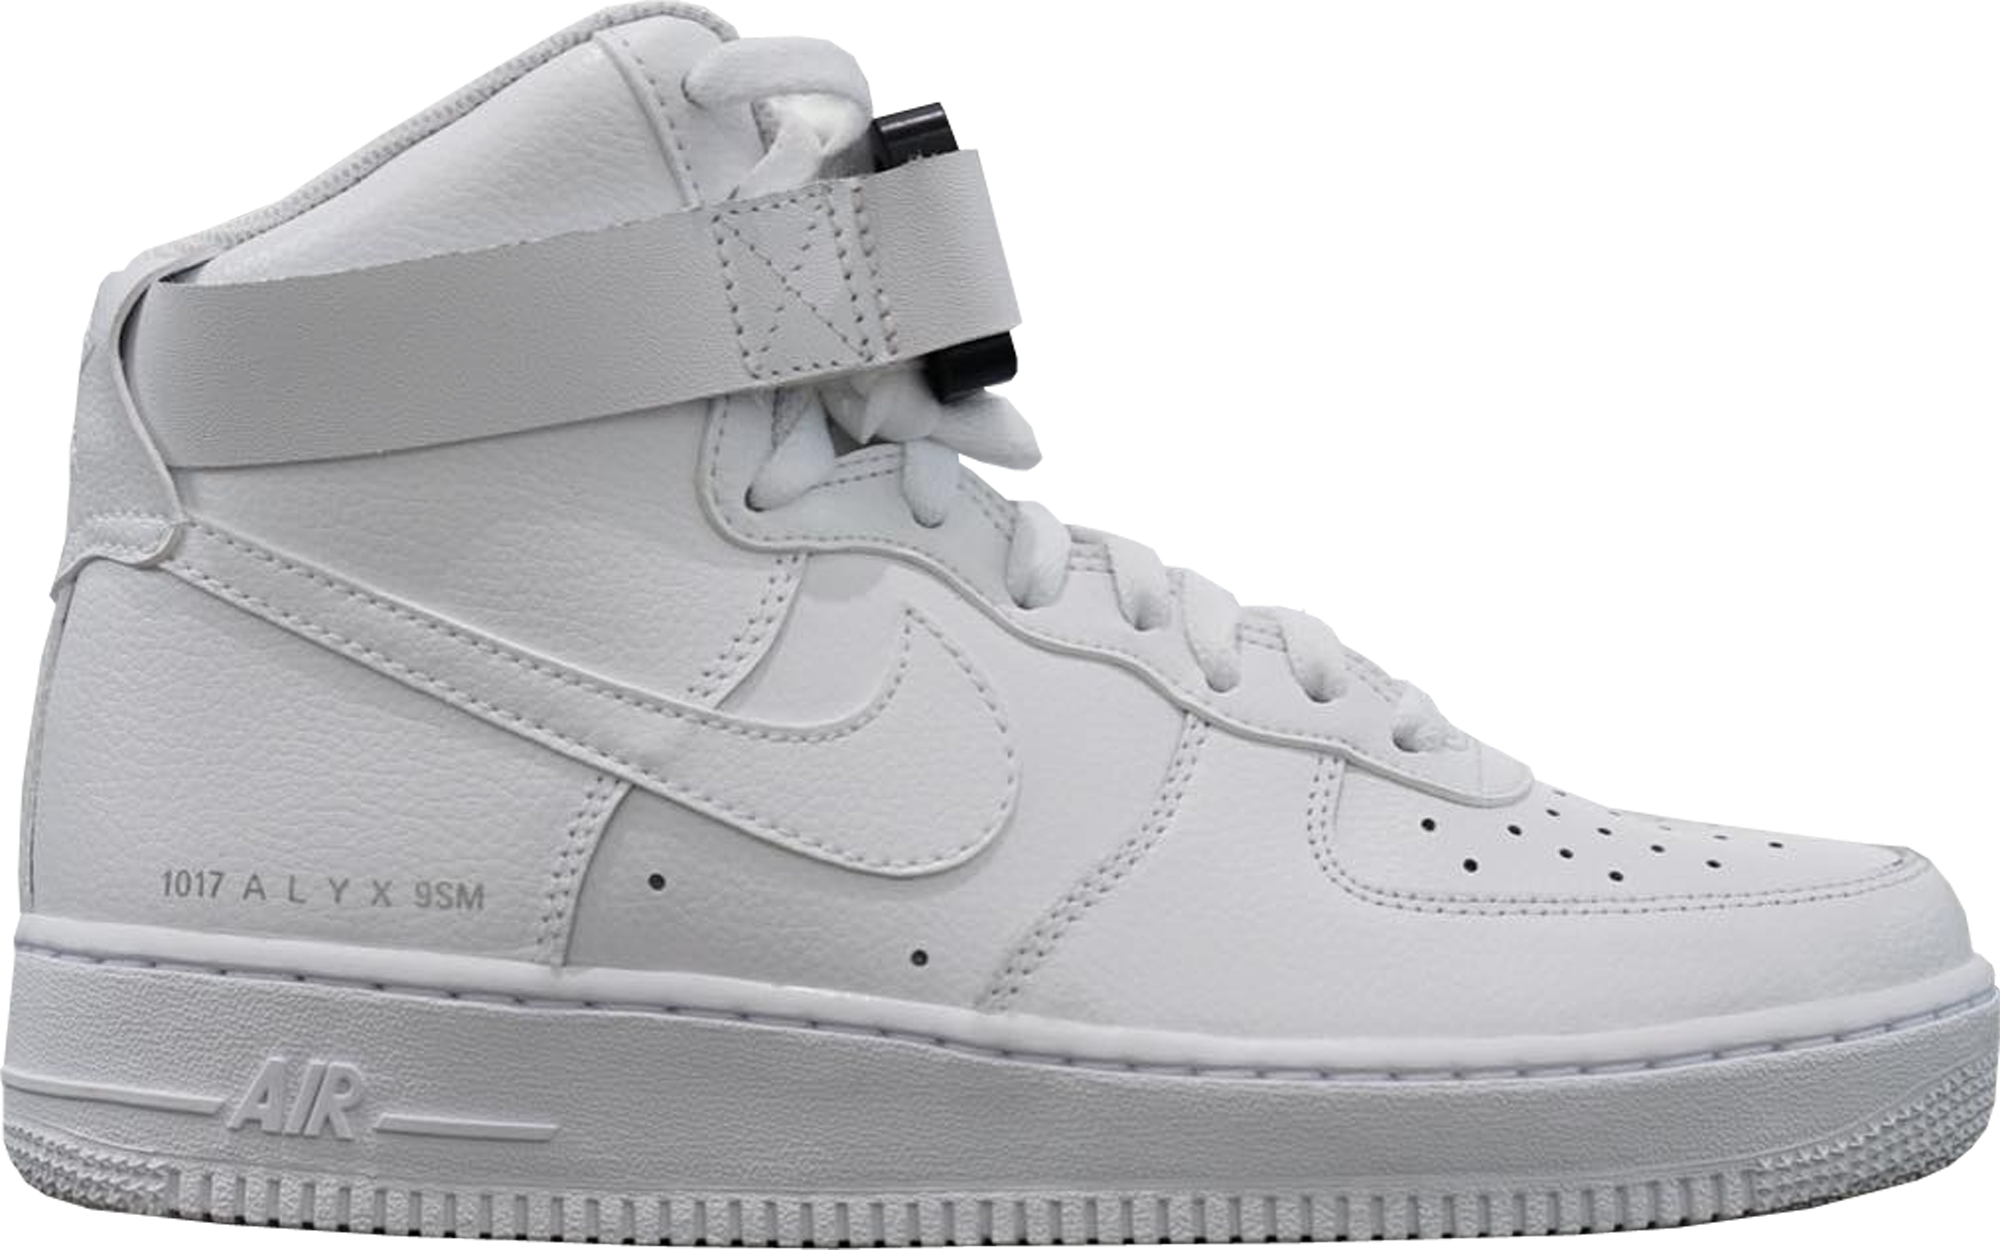 Nike Air Force 1 High ALYX White - Sneakers